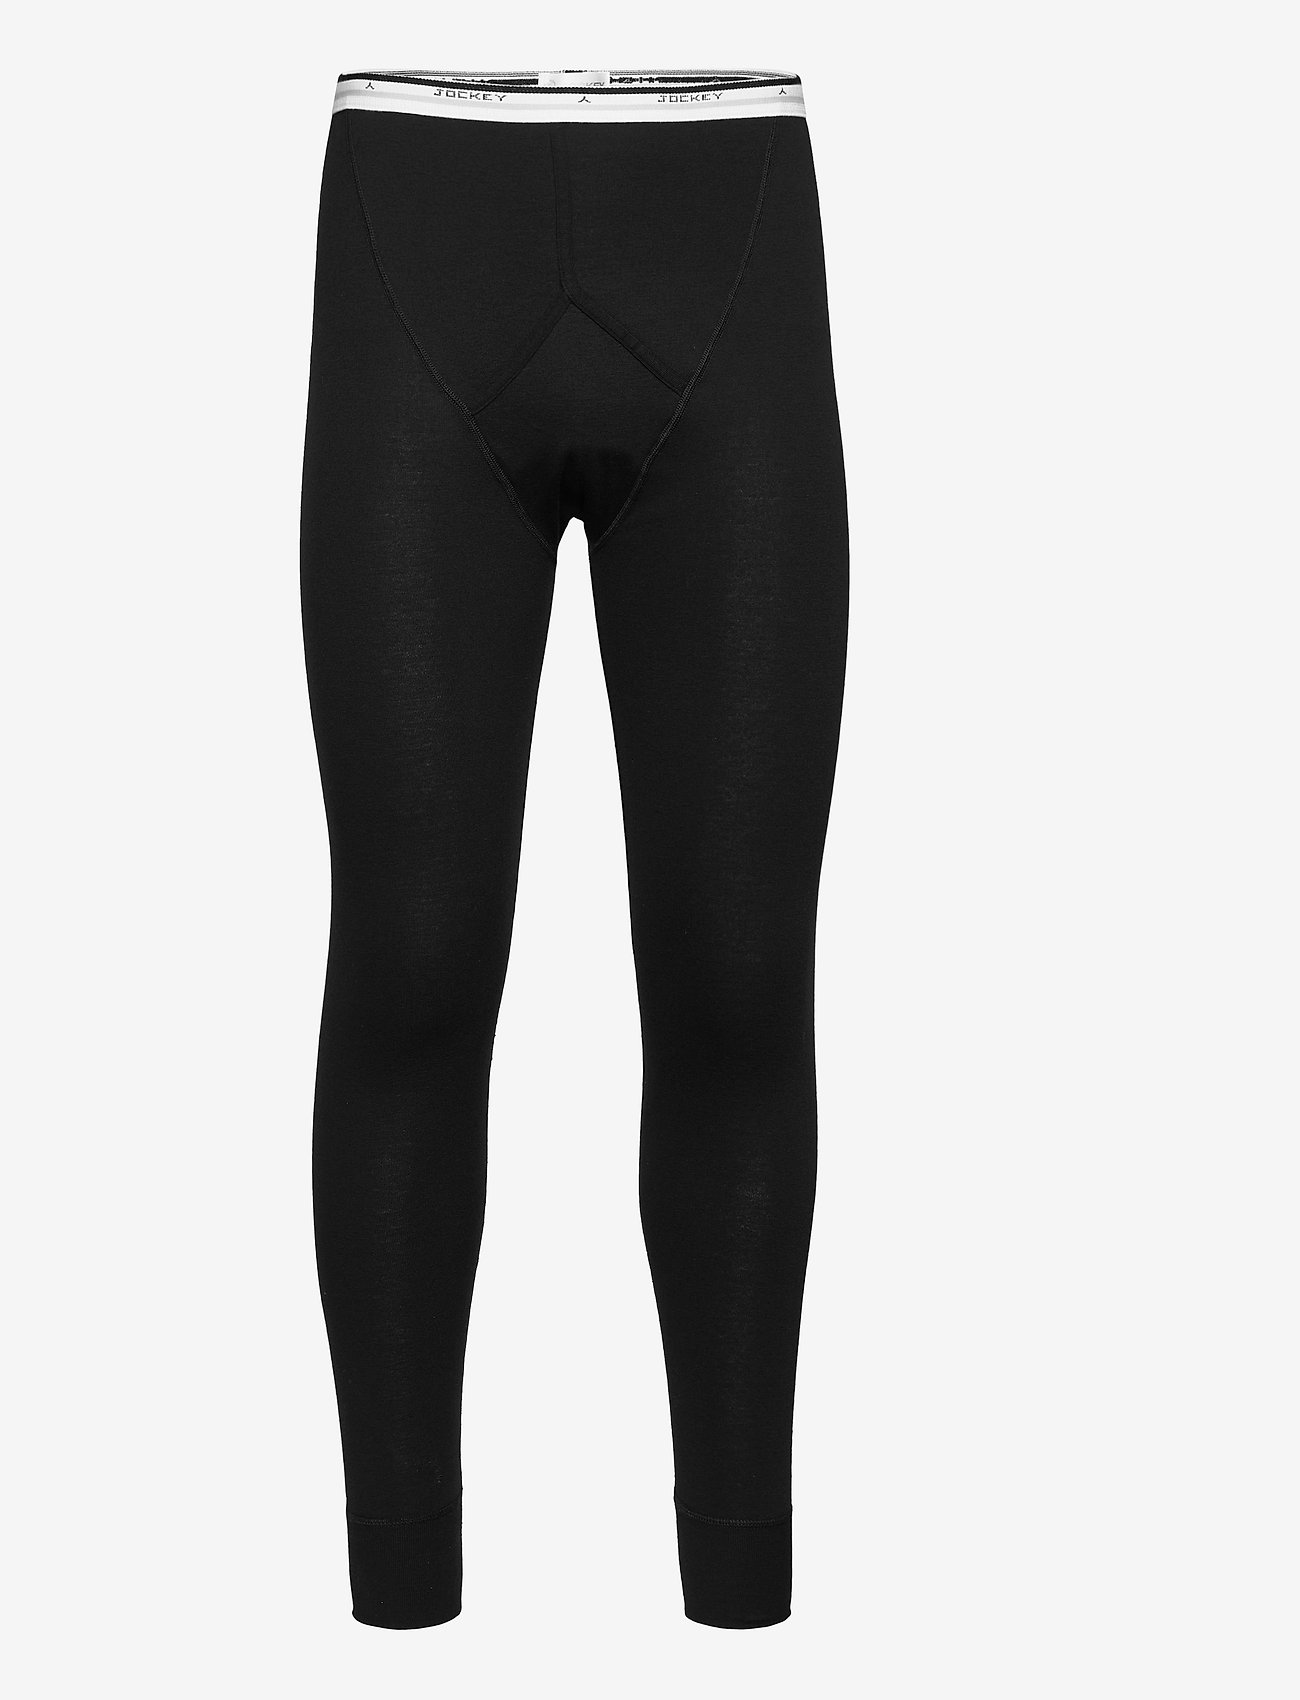 Jockey - Long spurt - base layer bottoms - black - 0